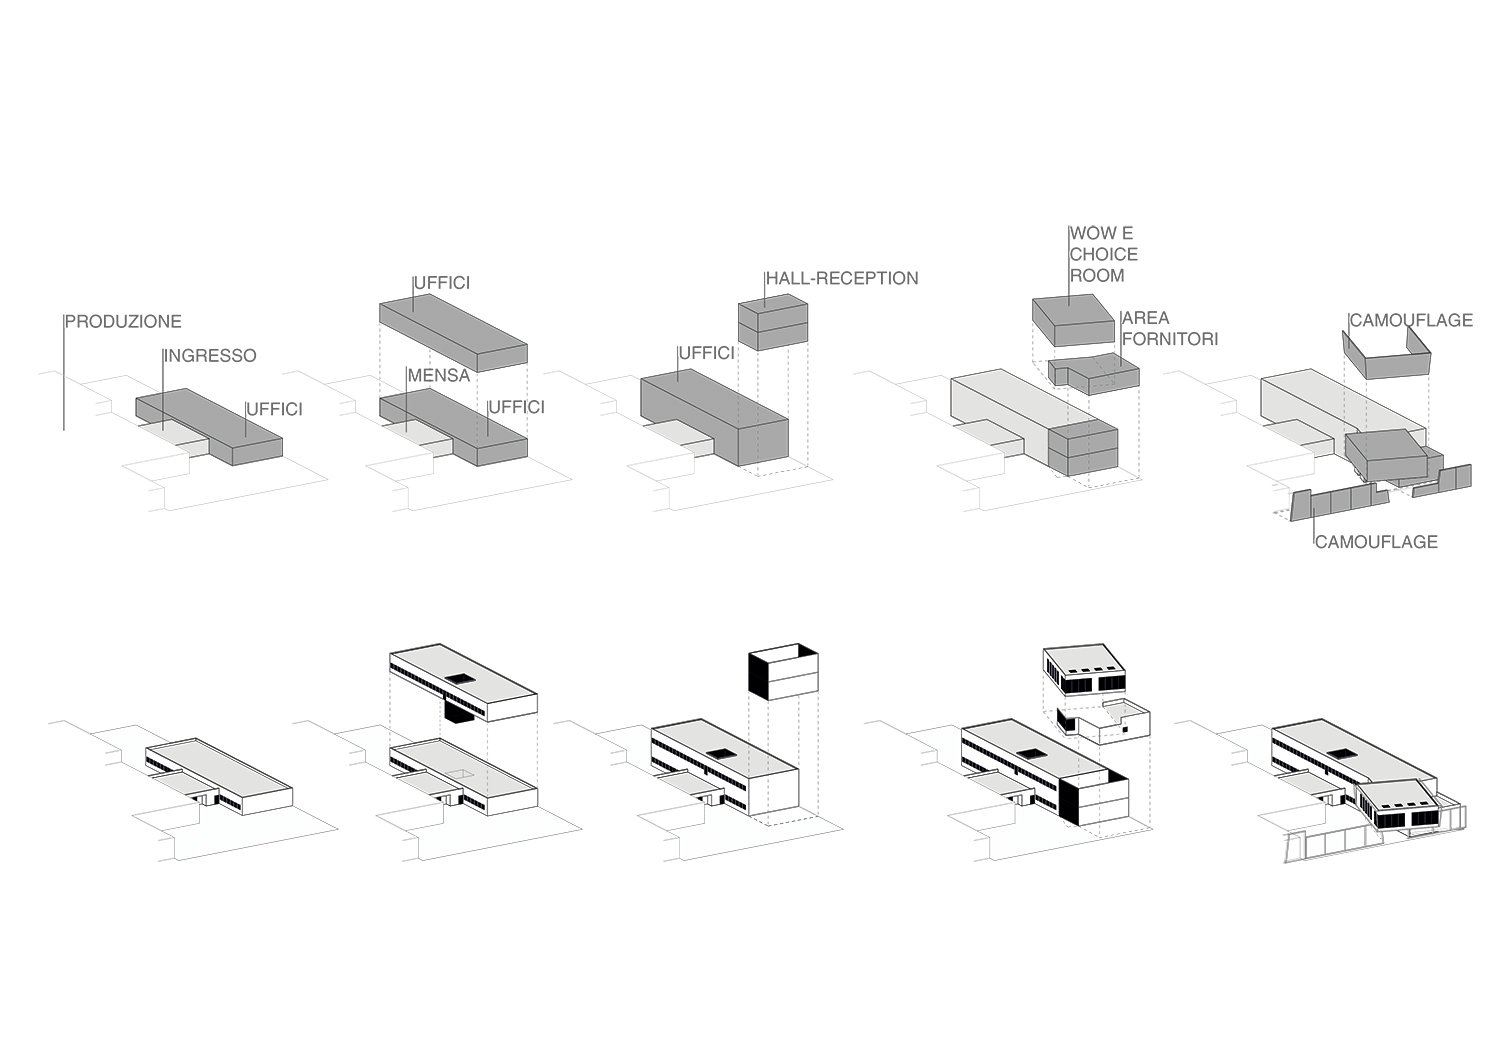 Schemi assonometrici Iarchitects}